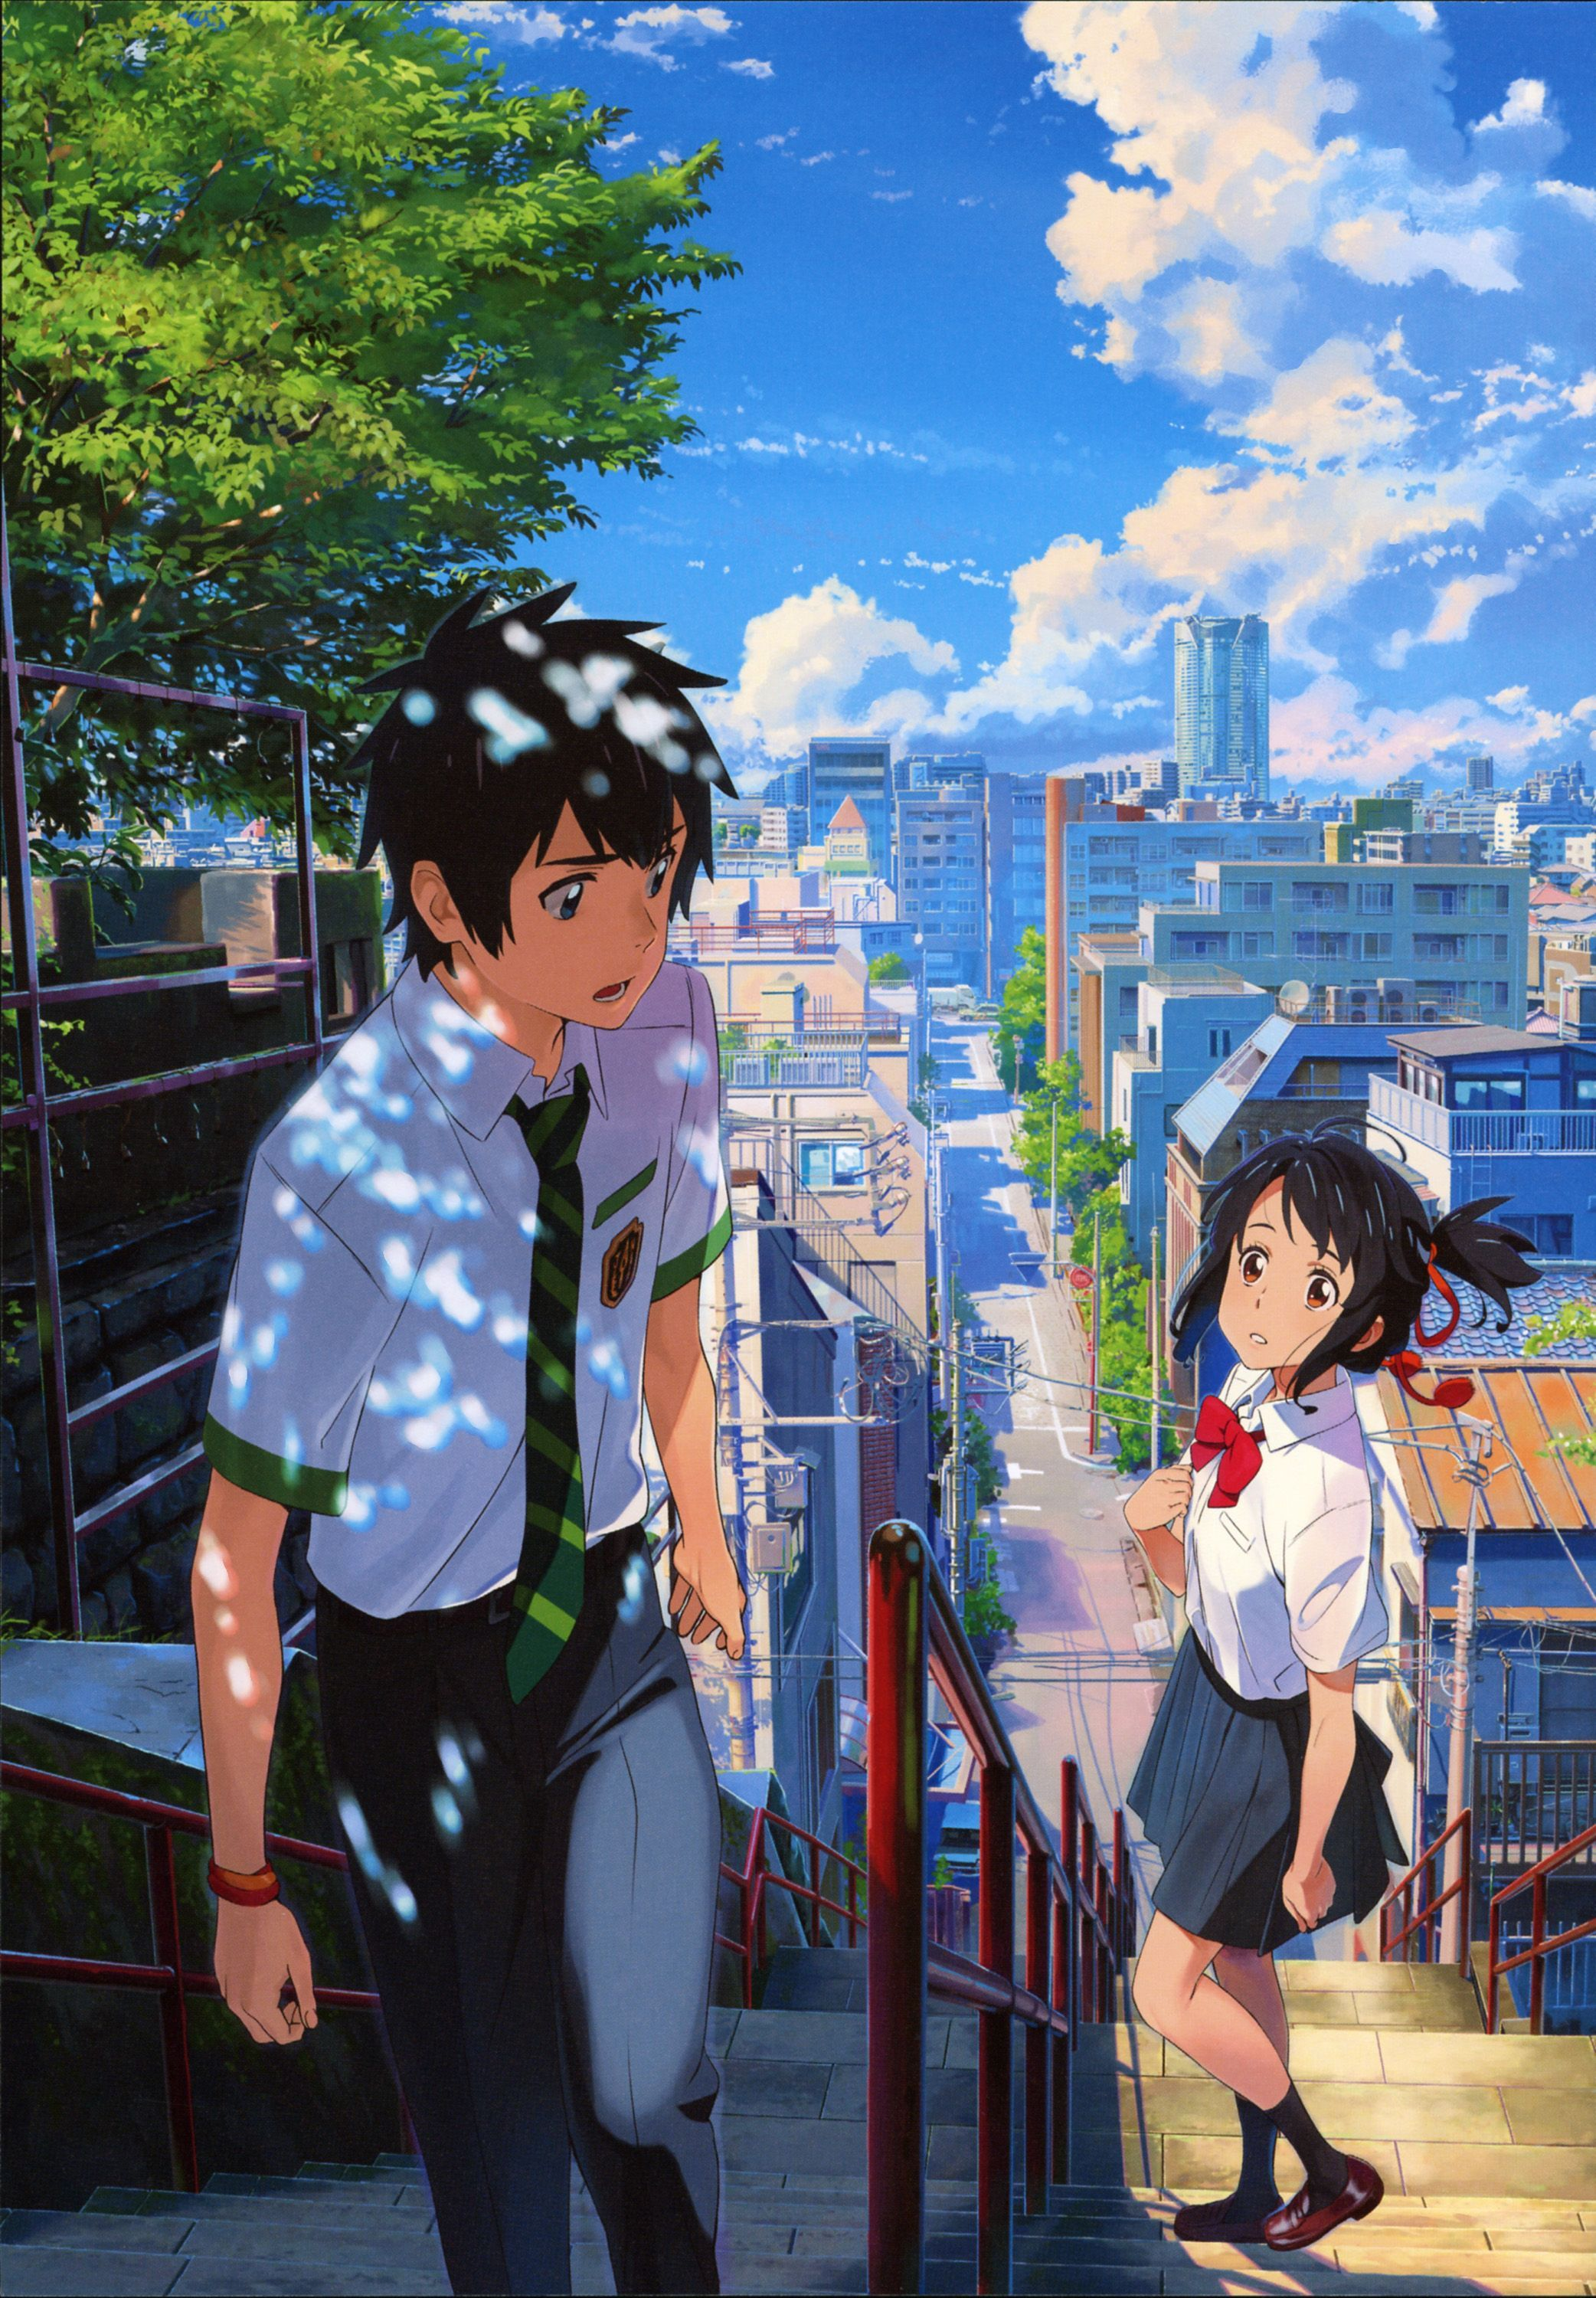 Your Name Anime Aesthetic Wallpapers Wallpaper Cave